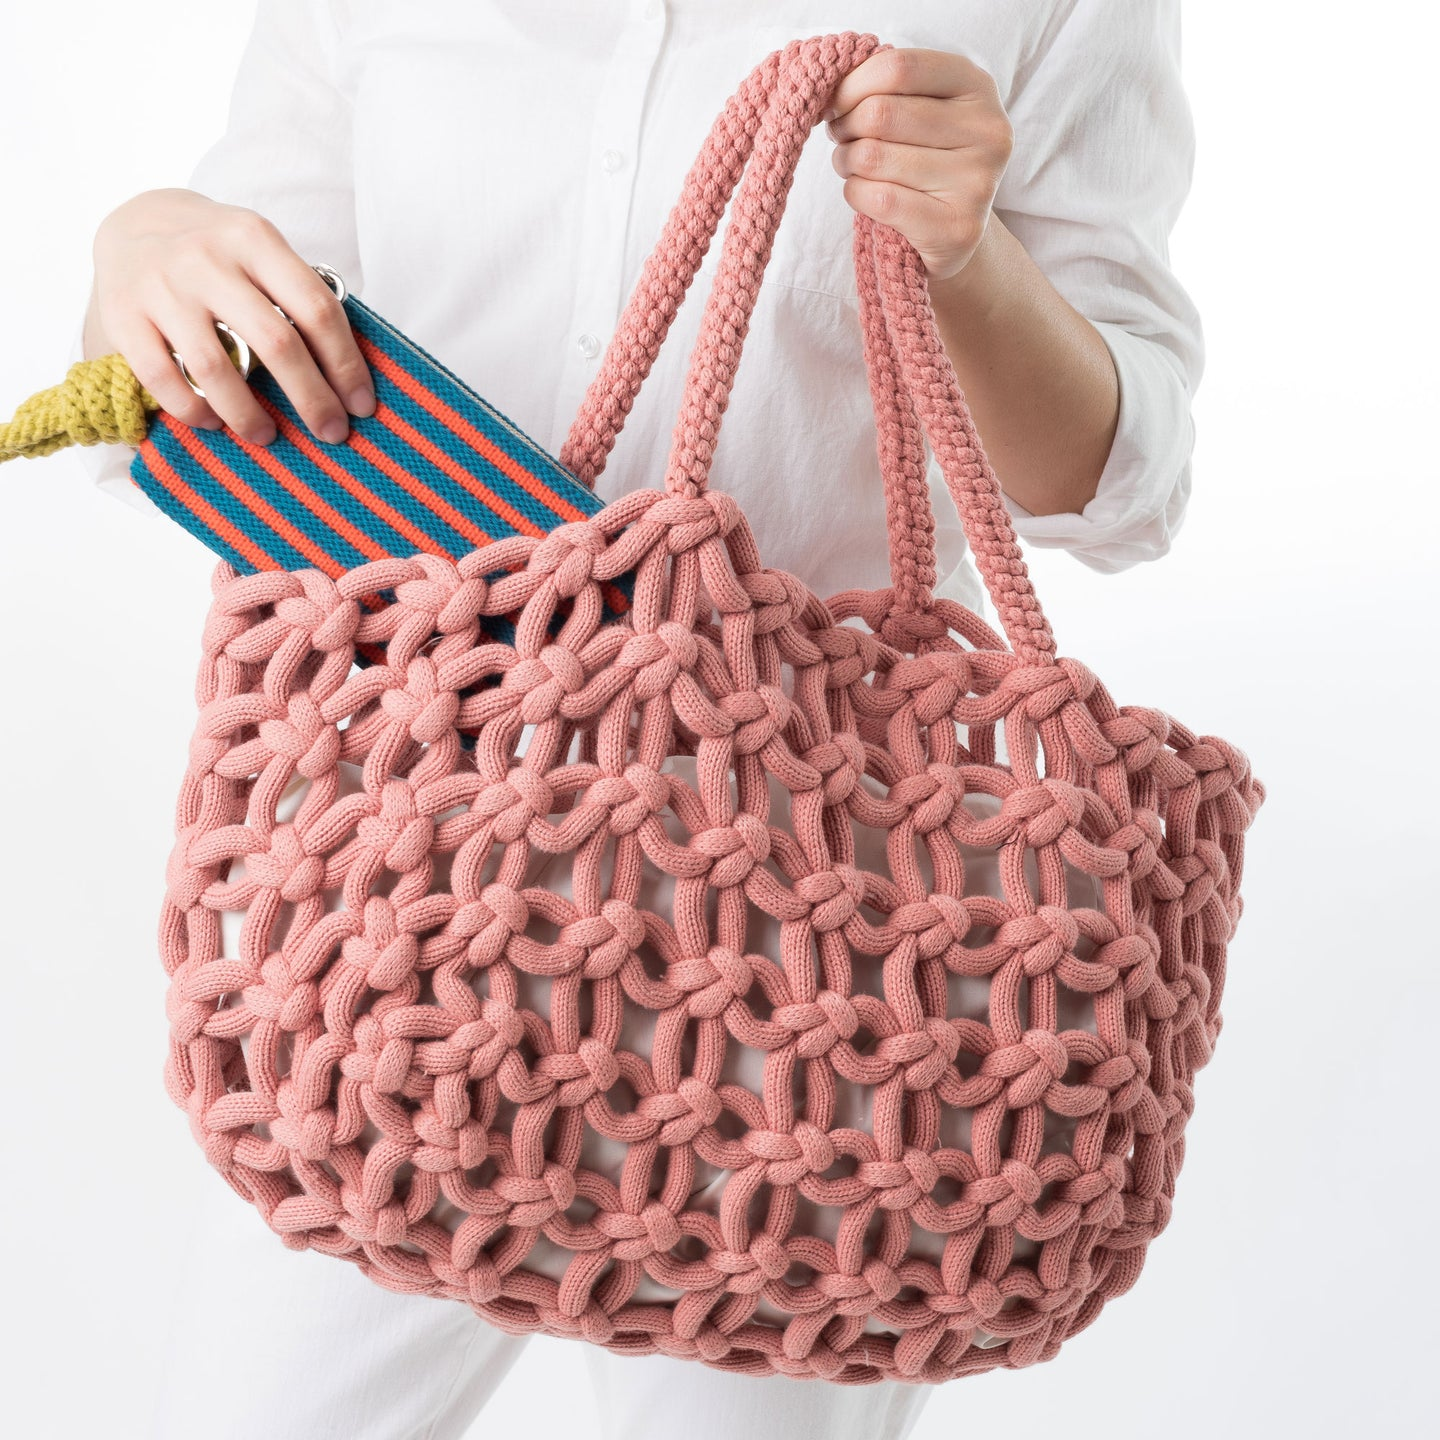 Knotted Carryall Tote